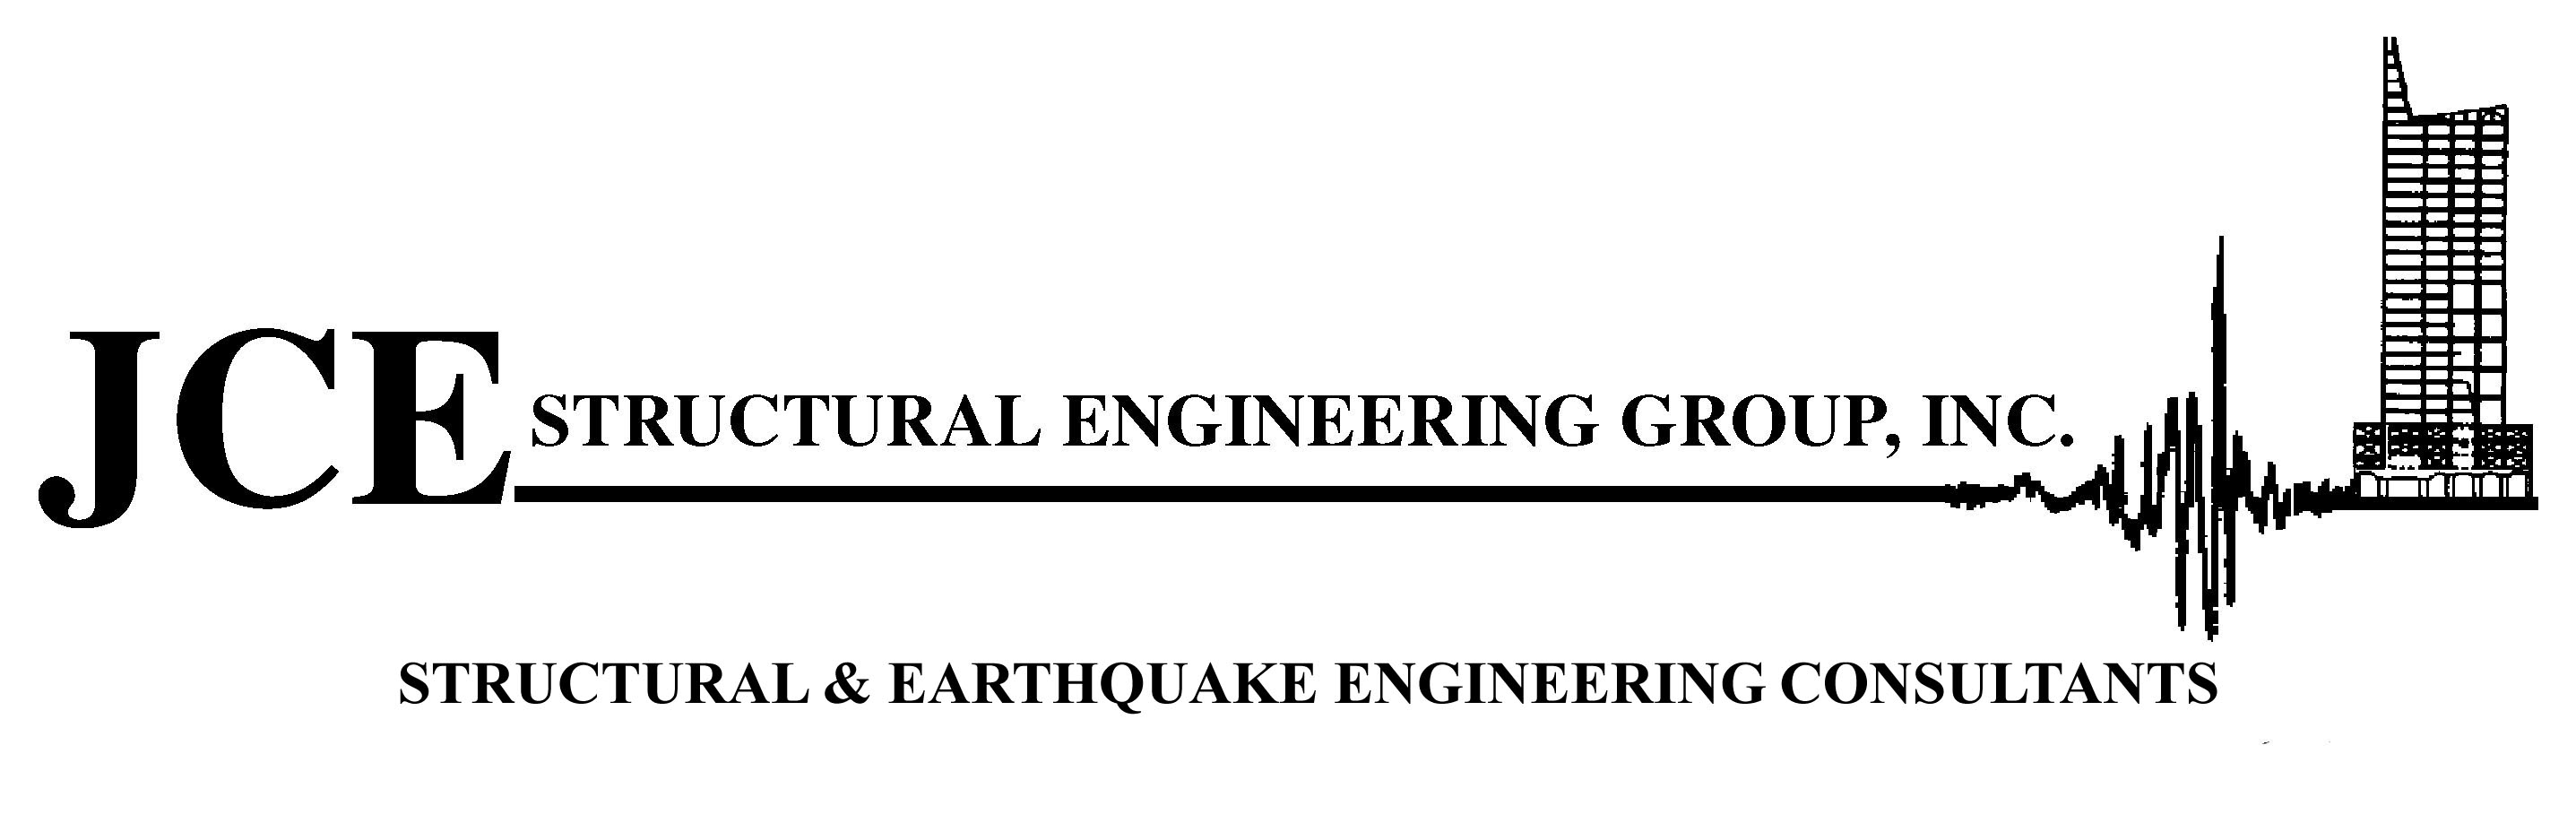 JCE Structural Engineering Group